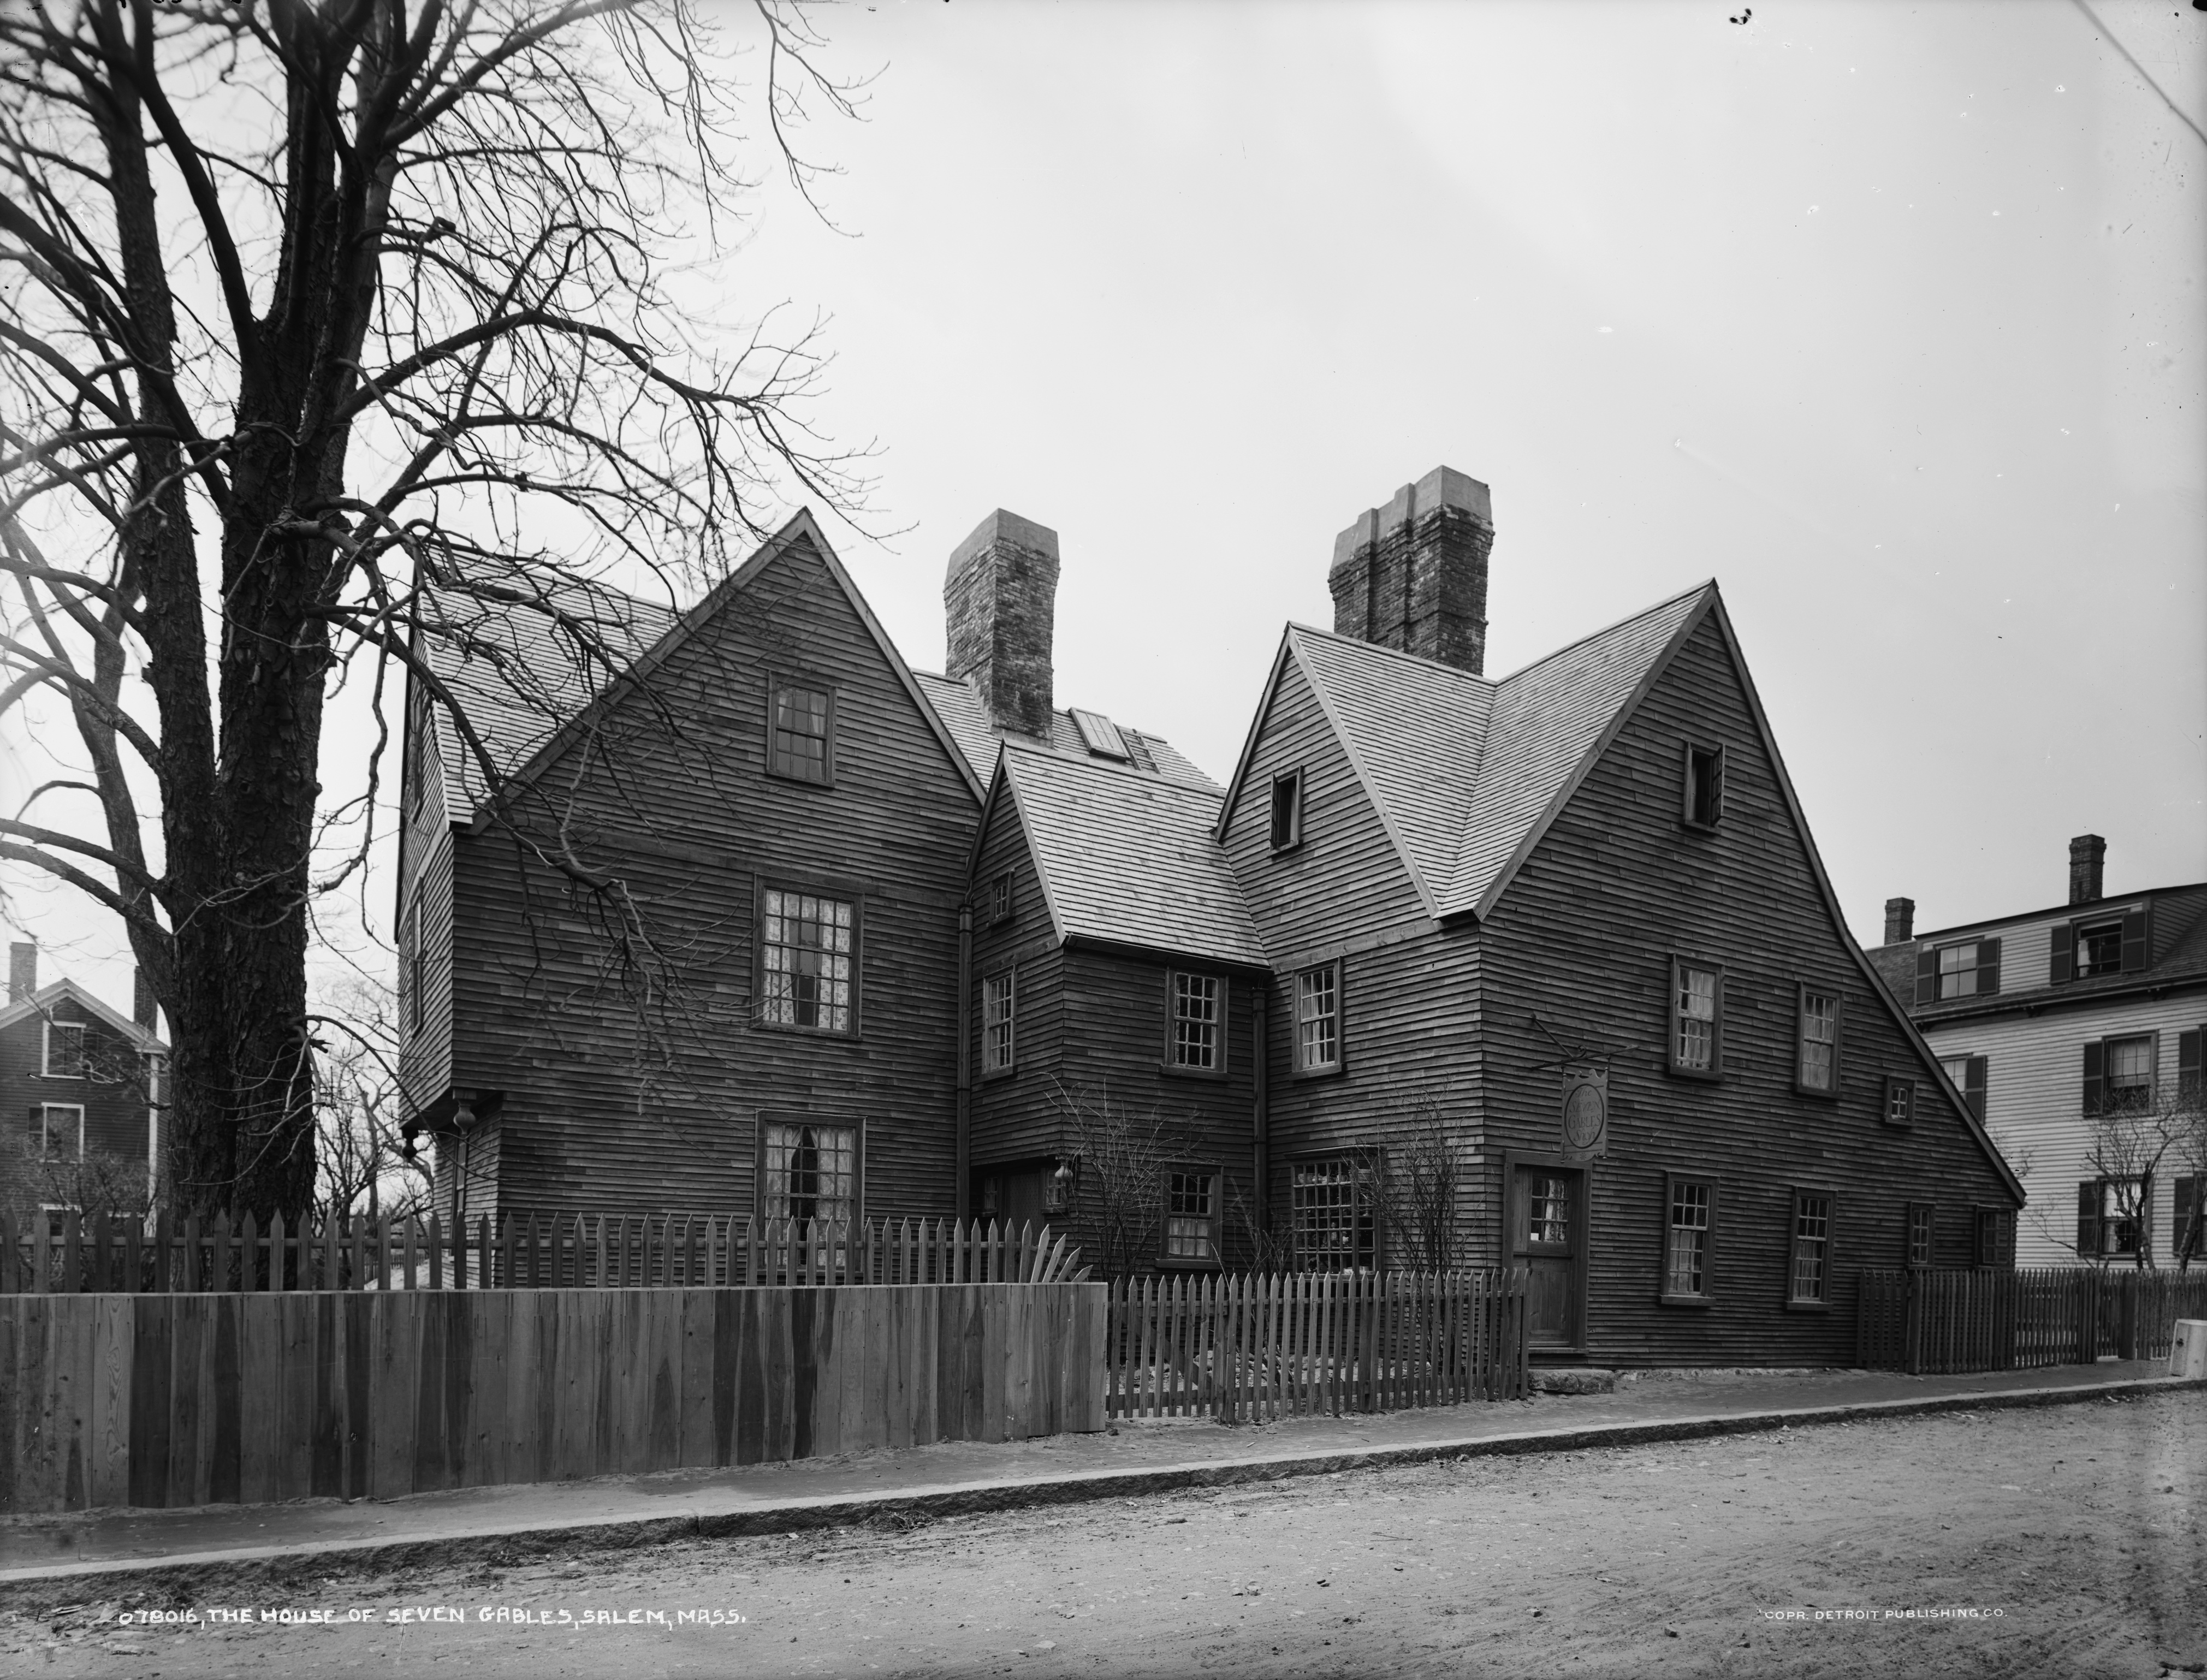 House_of_the_Seven_Gables_(1915)